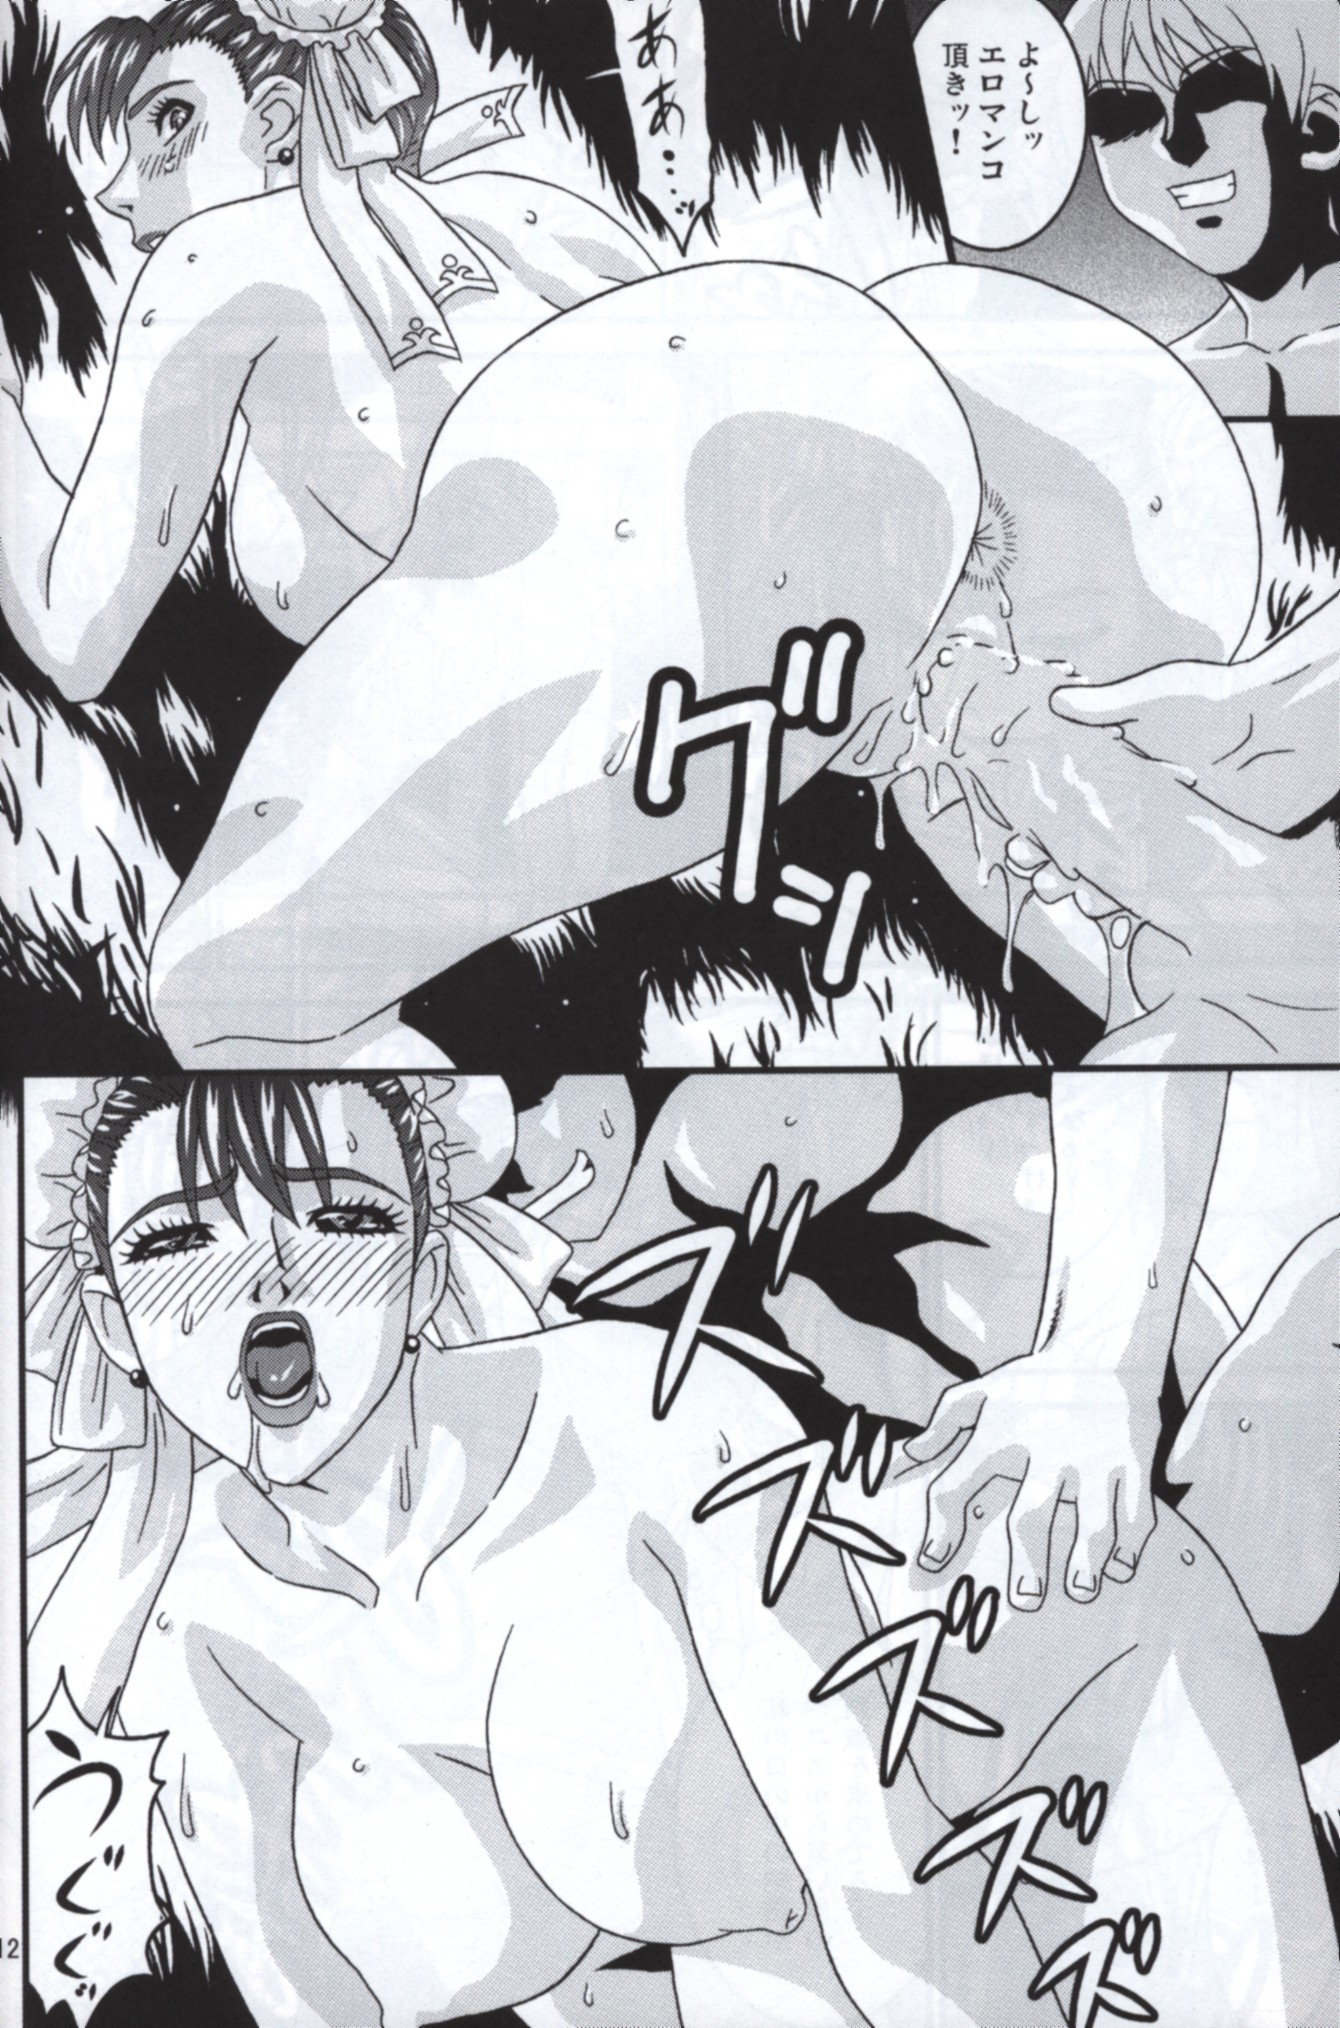 [Adult] Doujinshi - Street Fighter (ゲーの魂!5) / 轟天道場